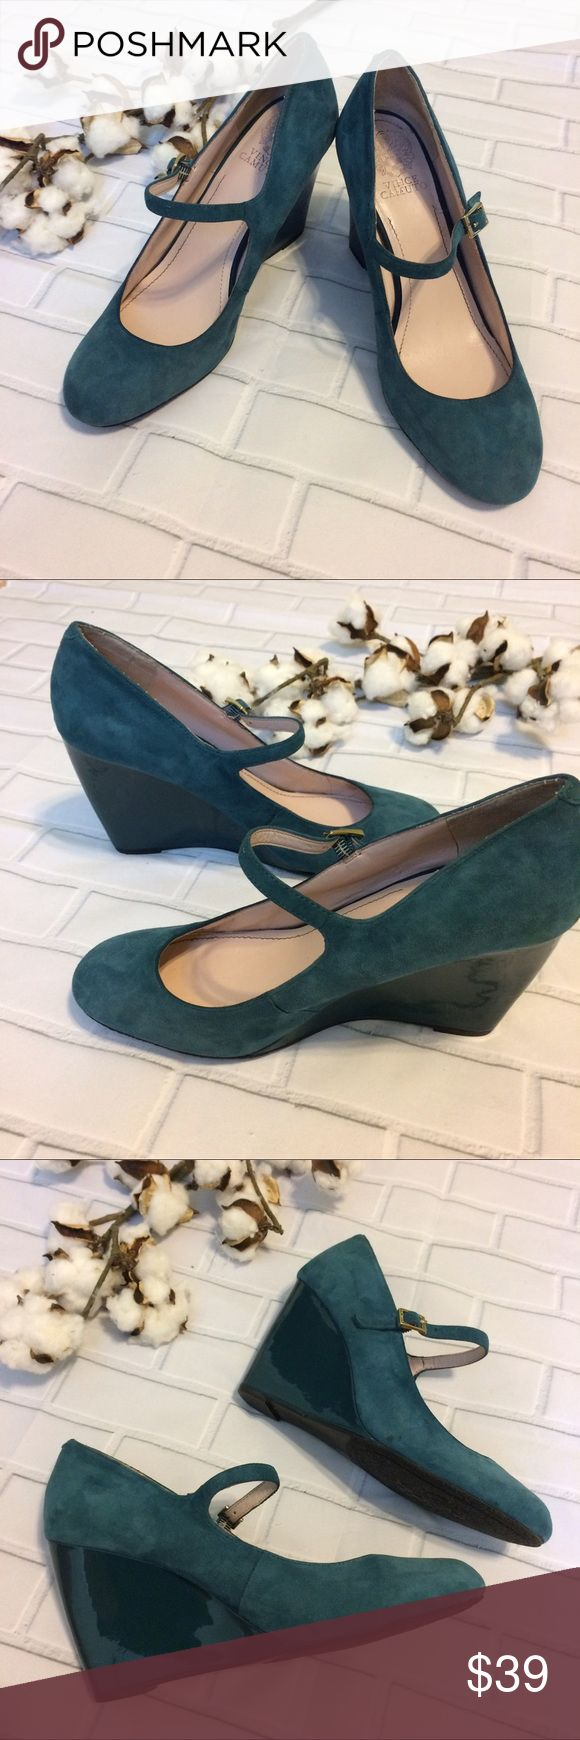 EUC Teal Vince Camuto Magie Mary Jane Suede Wedge EUC Super cute, Vince Camuto Suede Mary Jane Style Wedges. Features gorgeous teal suede upper and matching teal patent wedge and gold buckle in the strap. Very minor pulling at inside of the heels and one small nic on the left wedge. Smoke free home, fast ship. Vince Camuto Shoes